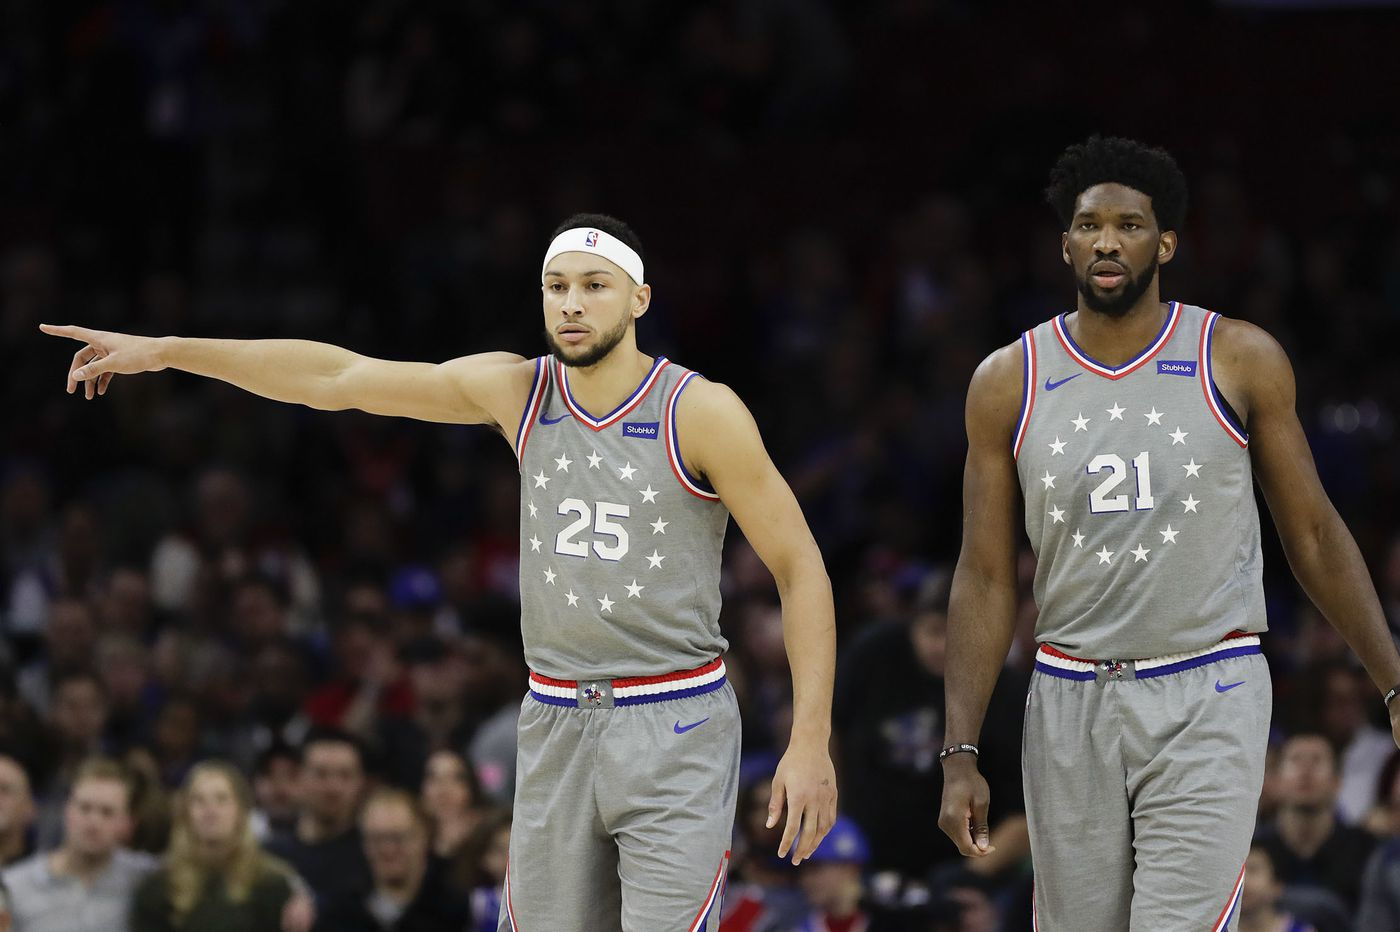 Ben Simmons' odds for three-pointers made during the season? Yeah, there's a prop for that.